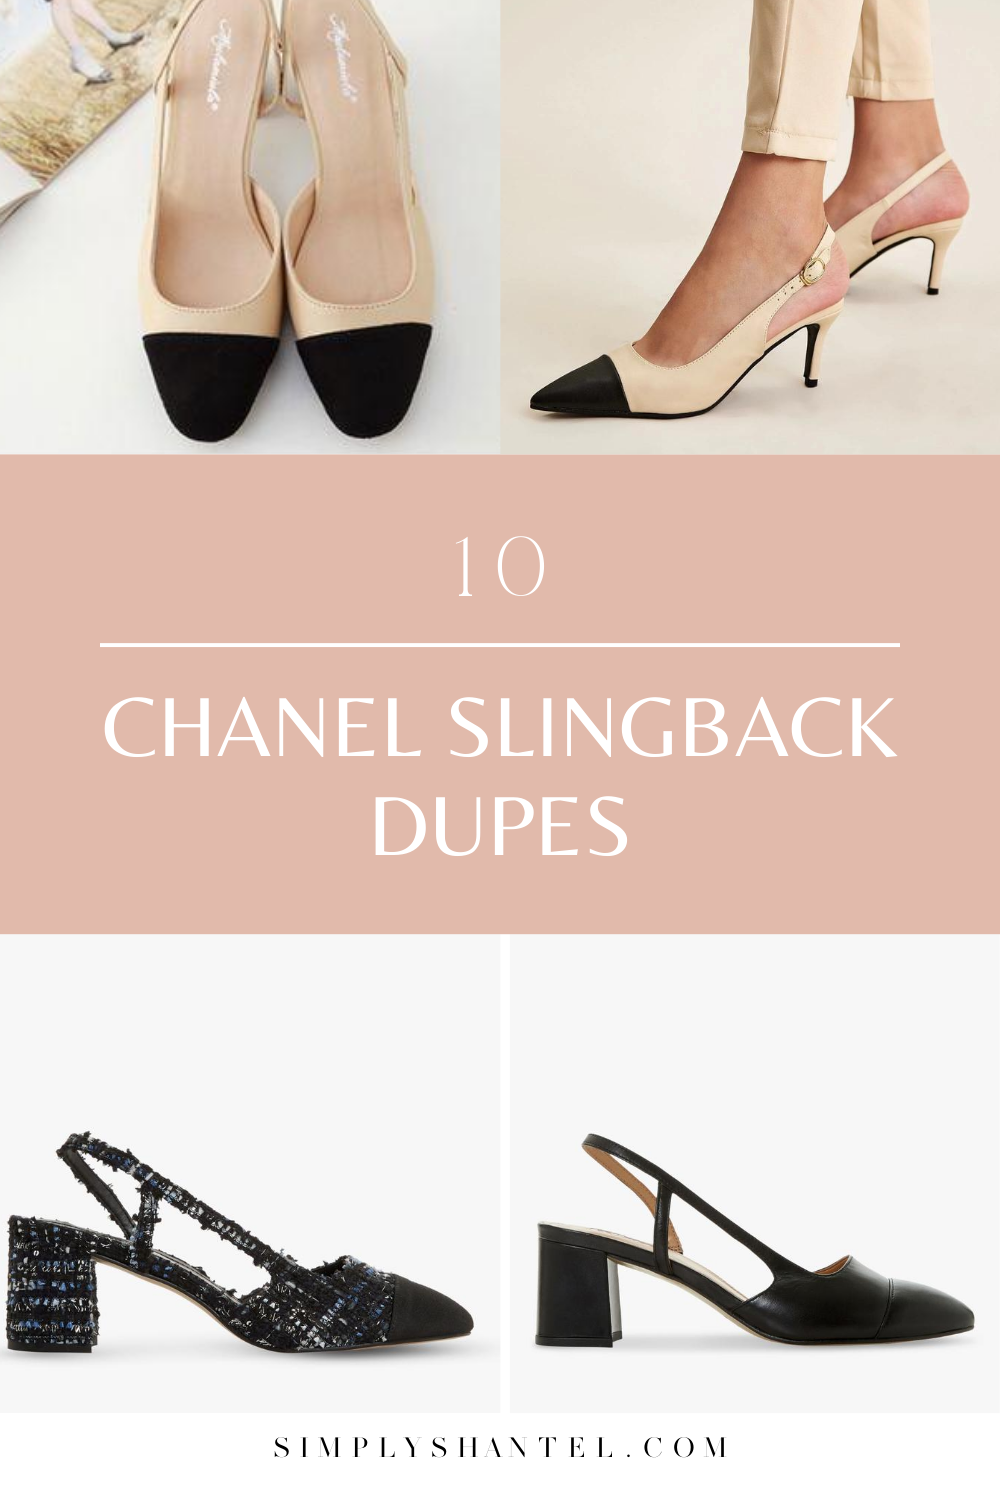 10 chanel slingback dupes